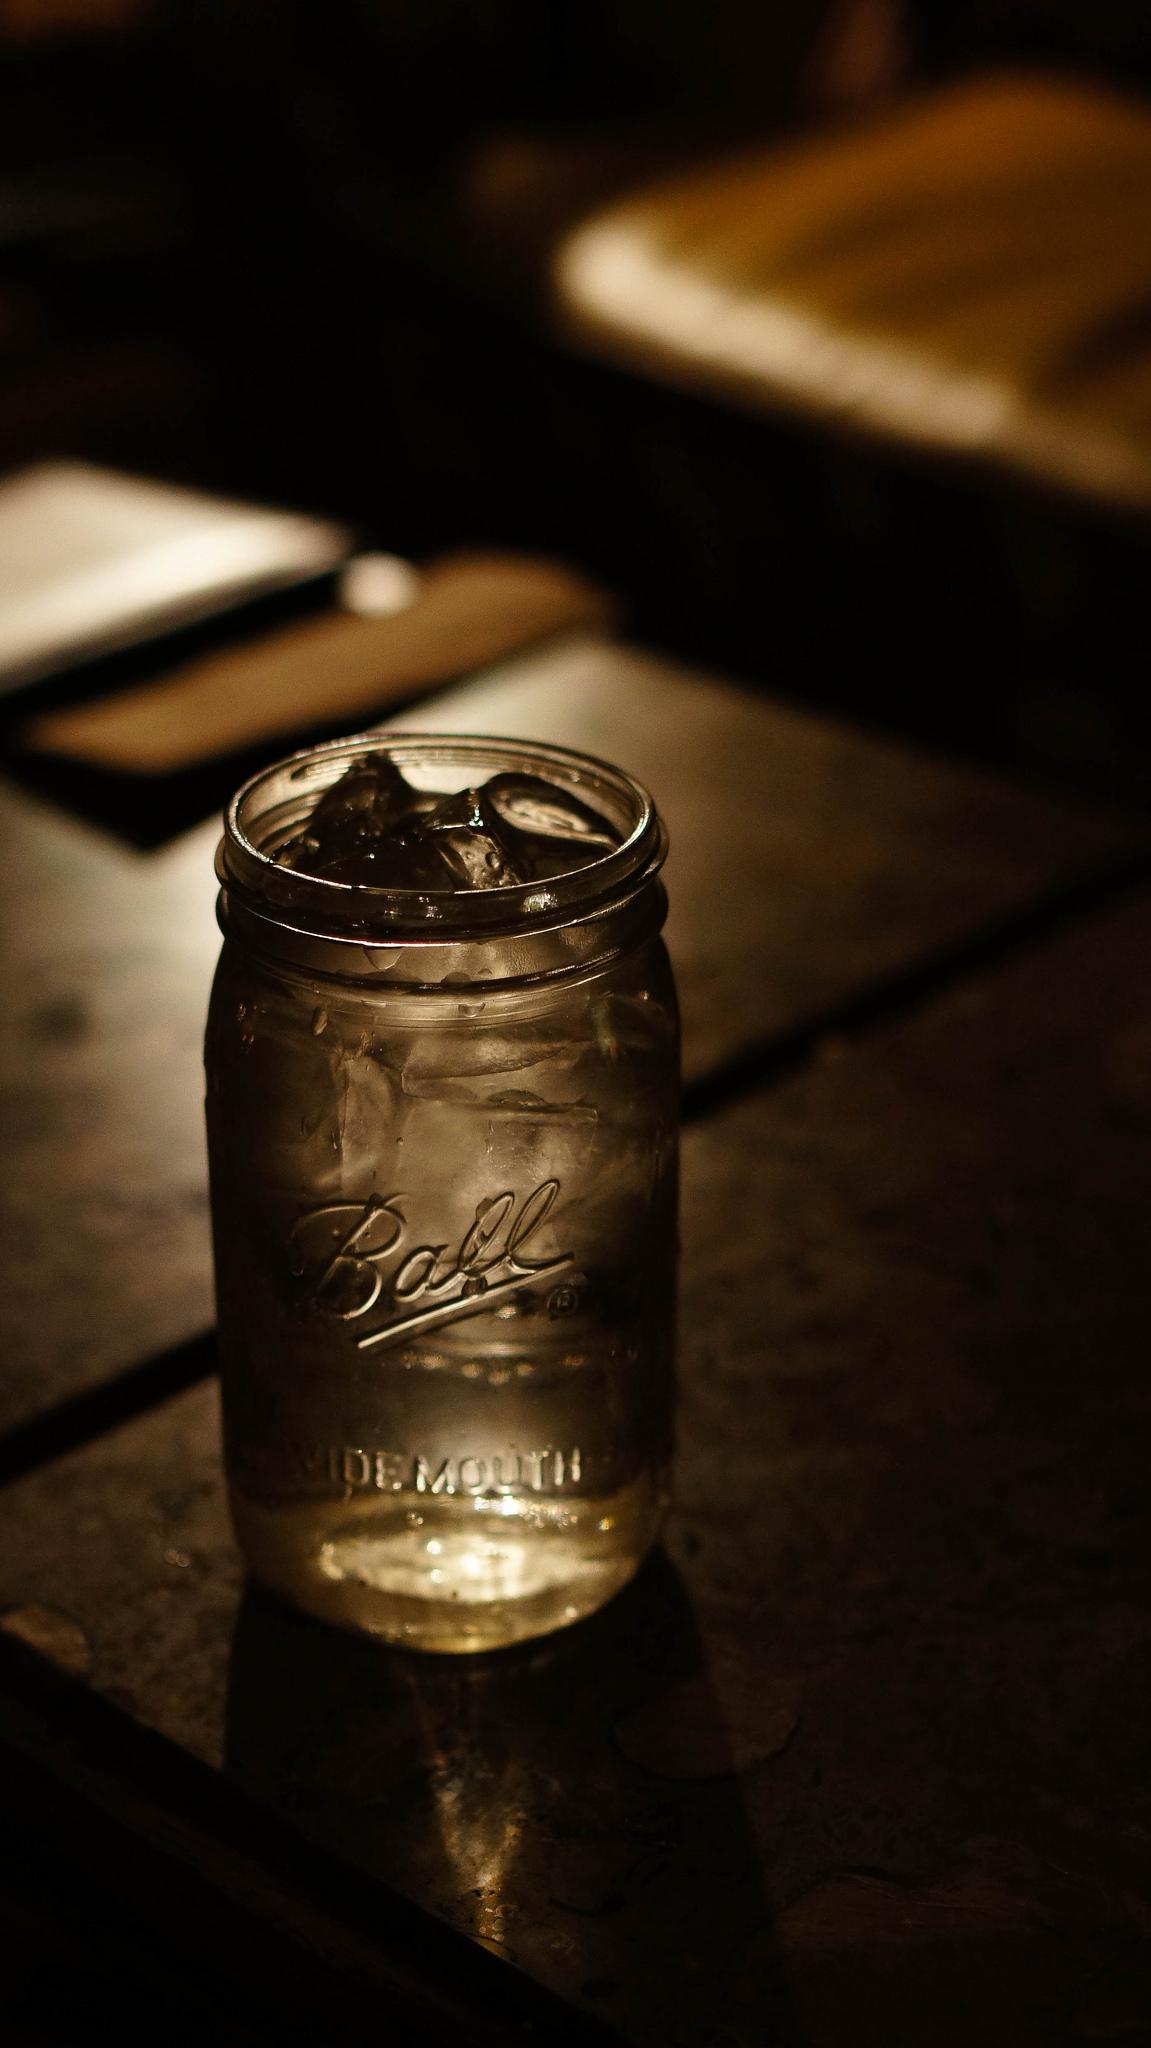 Drinking from a mason jar: hipster nonsense or a smart safety tip? Photo by João André O. Dias, used under Creative Commons licensing.